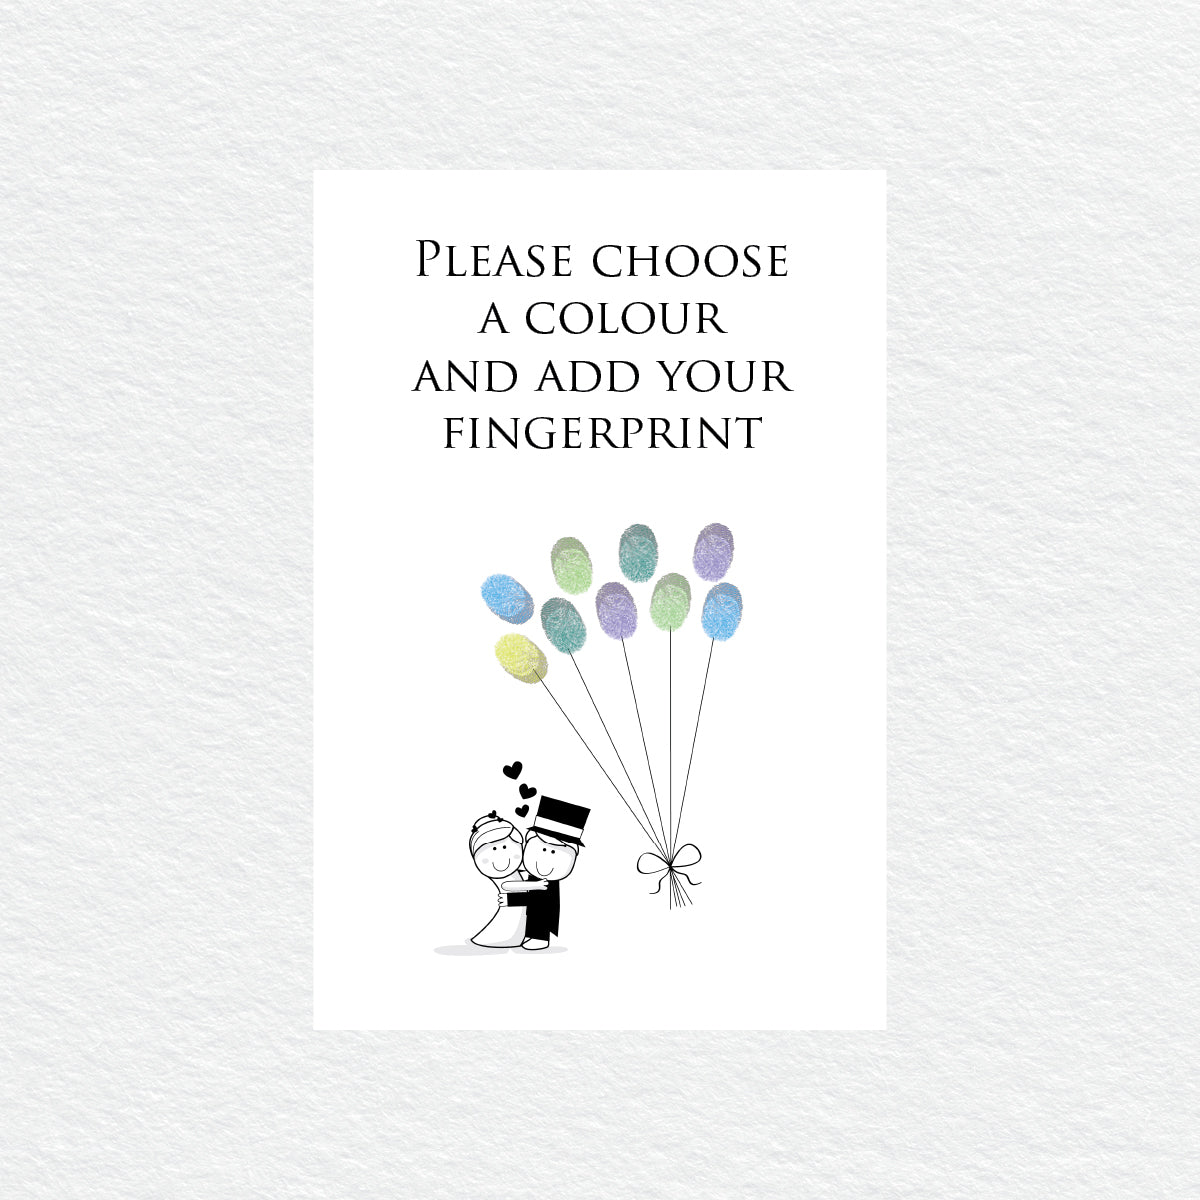 Cute Couple Balloon Fingerprint Kit